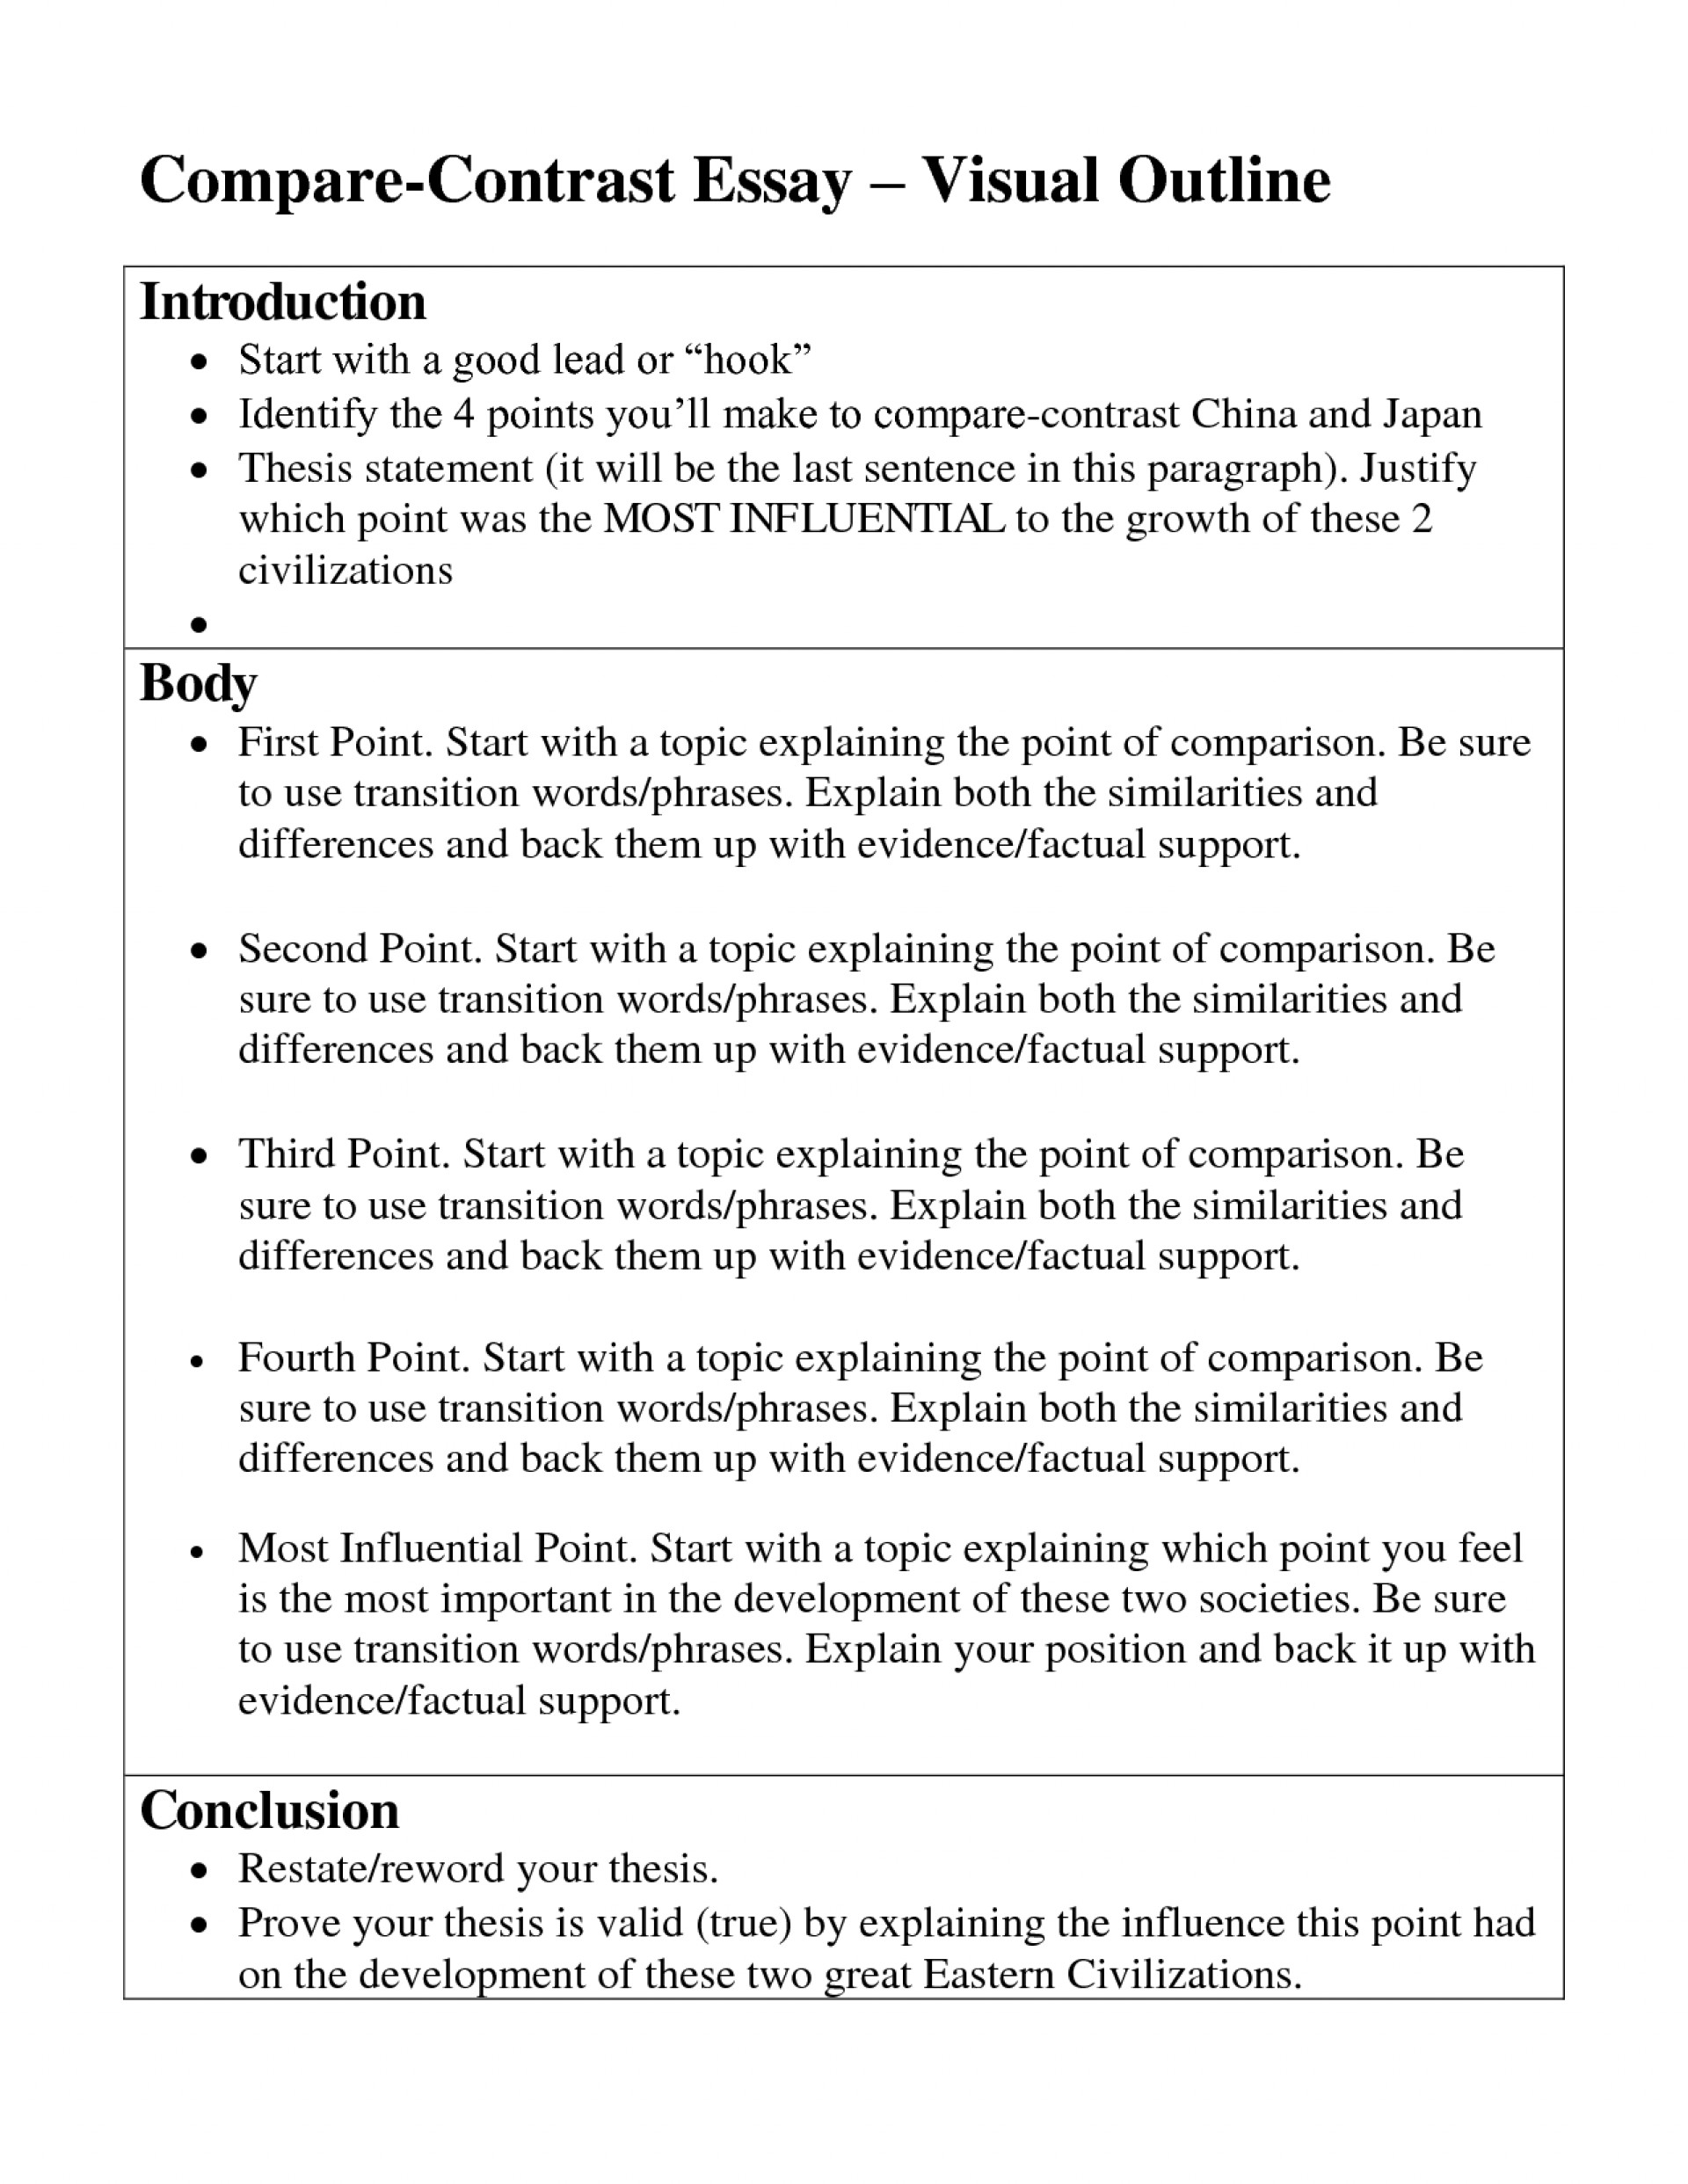 005 How To Write Compare And Contrast Essay Outstanding A Outline Powerpoint Introduction 1920